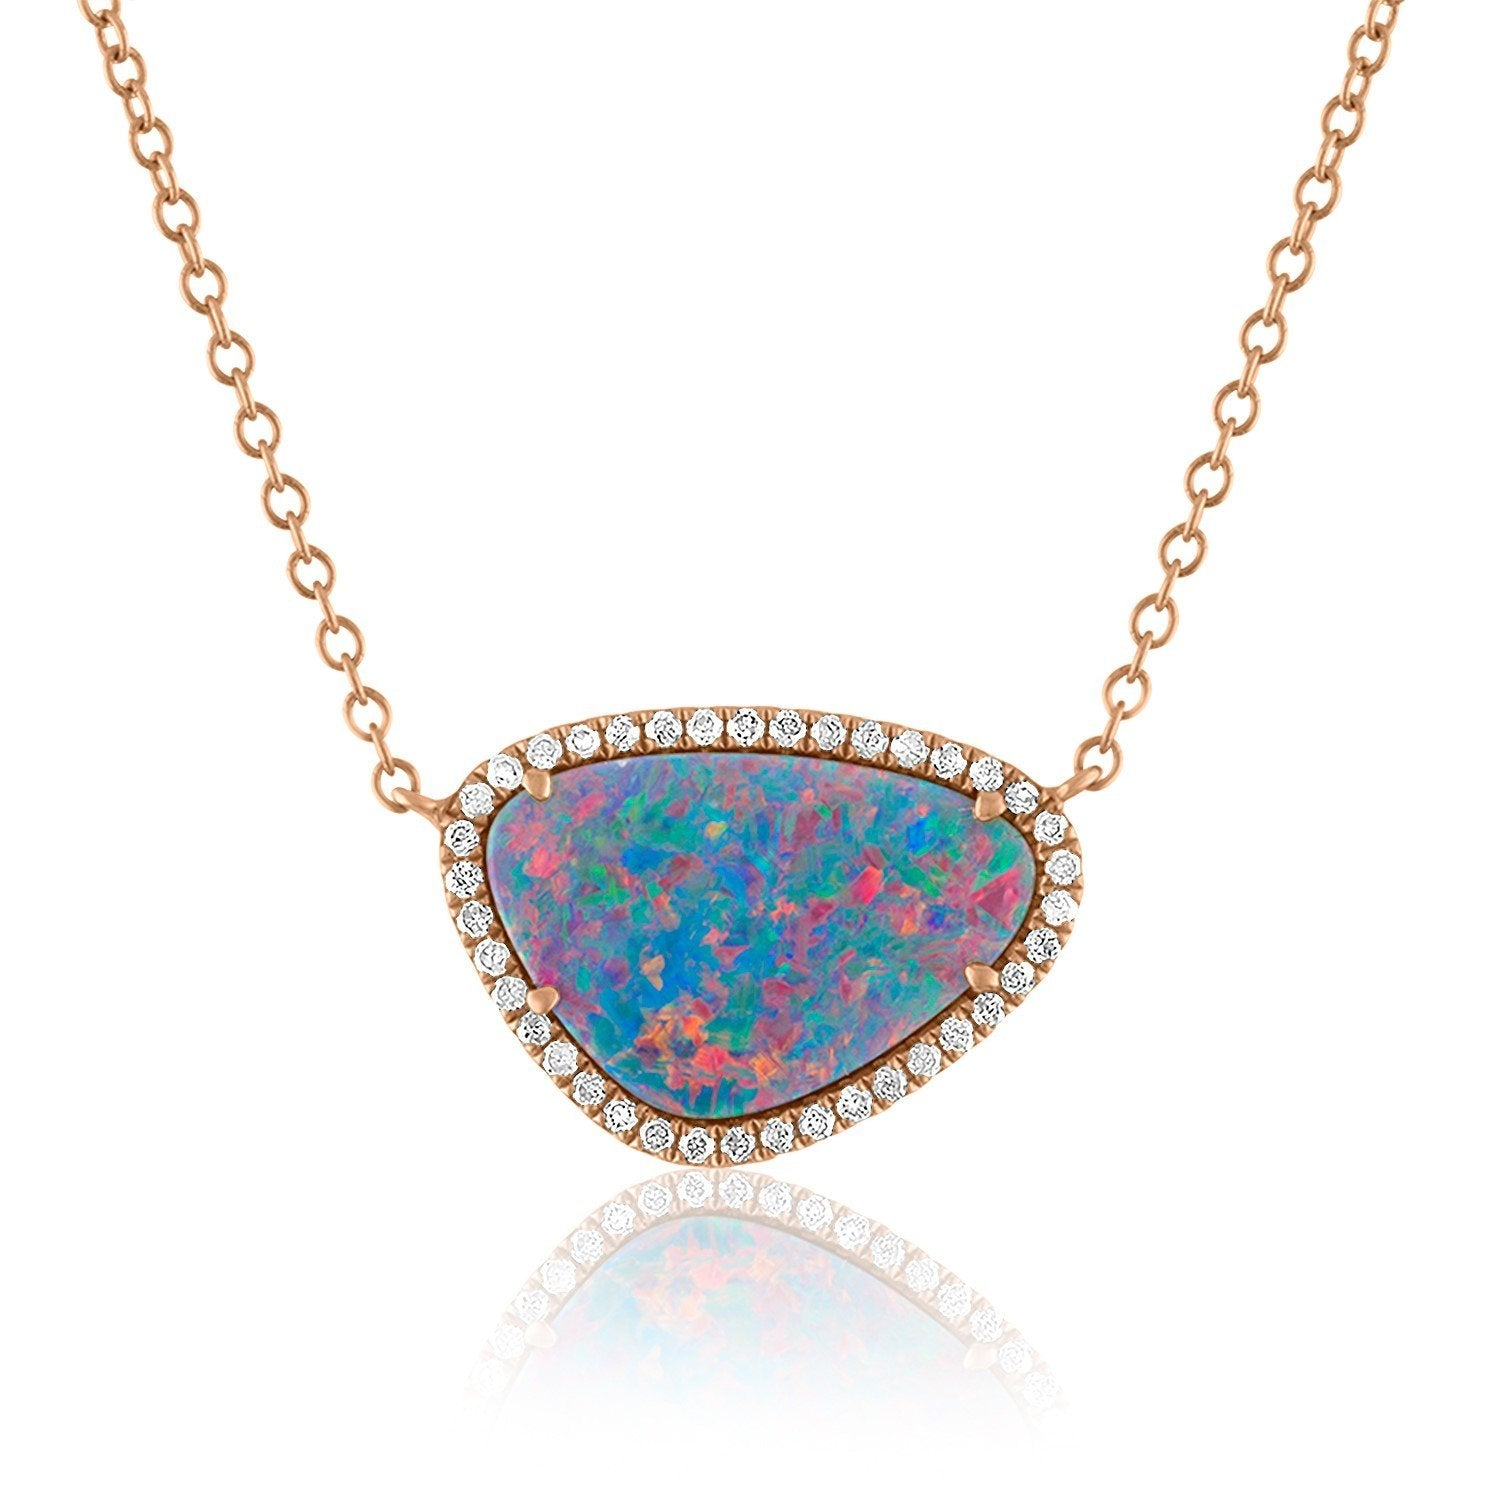 Vincents Fine Jewelry | Jane Kaye | Organic Opal Necklace